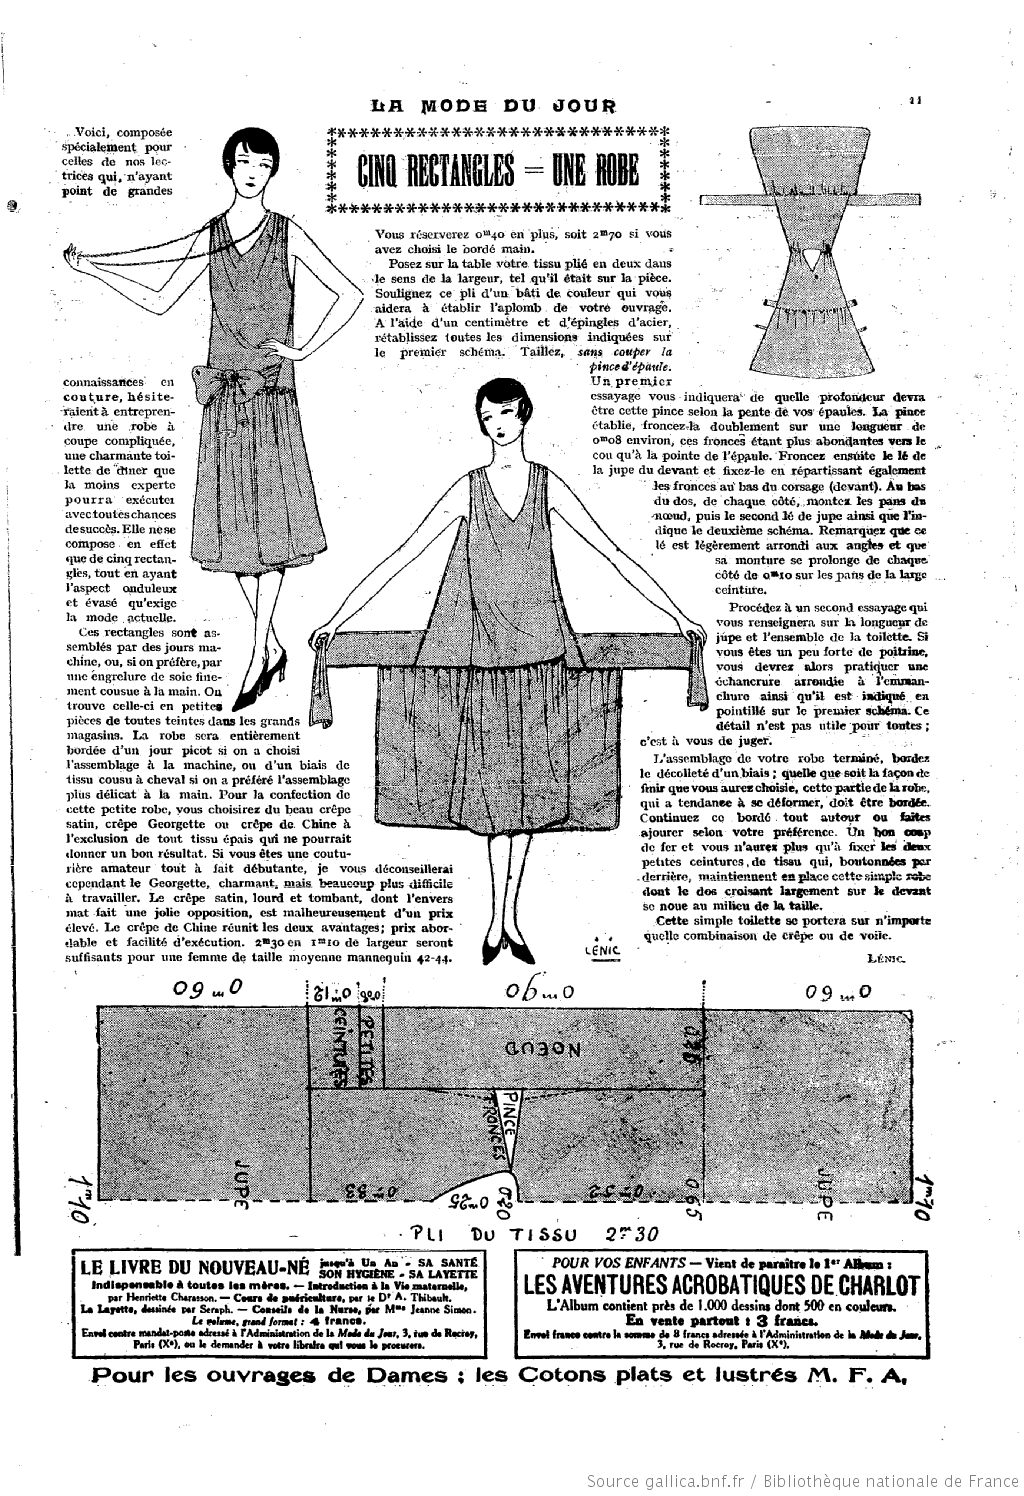 Vintage Knitting Patterns 1920s : Lana creations My knitting work, knit project and free patterns catalogue